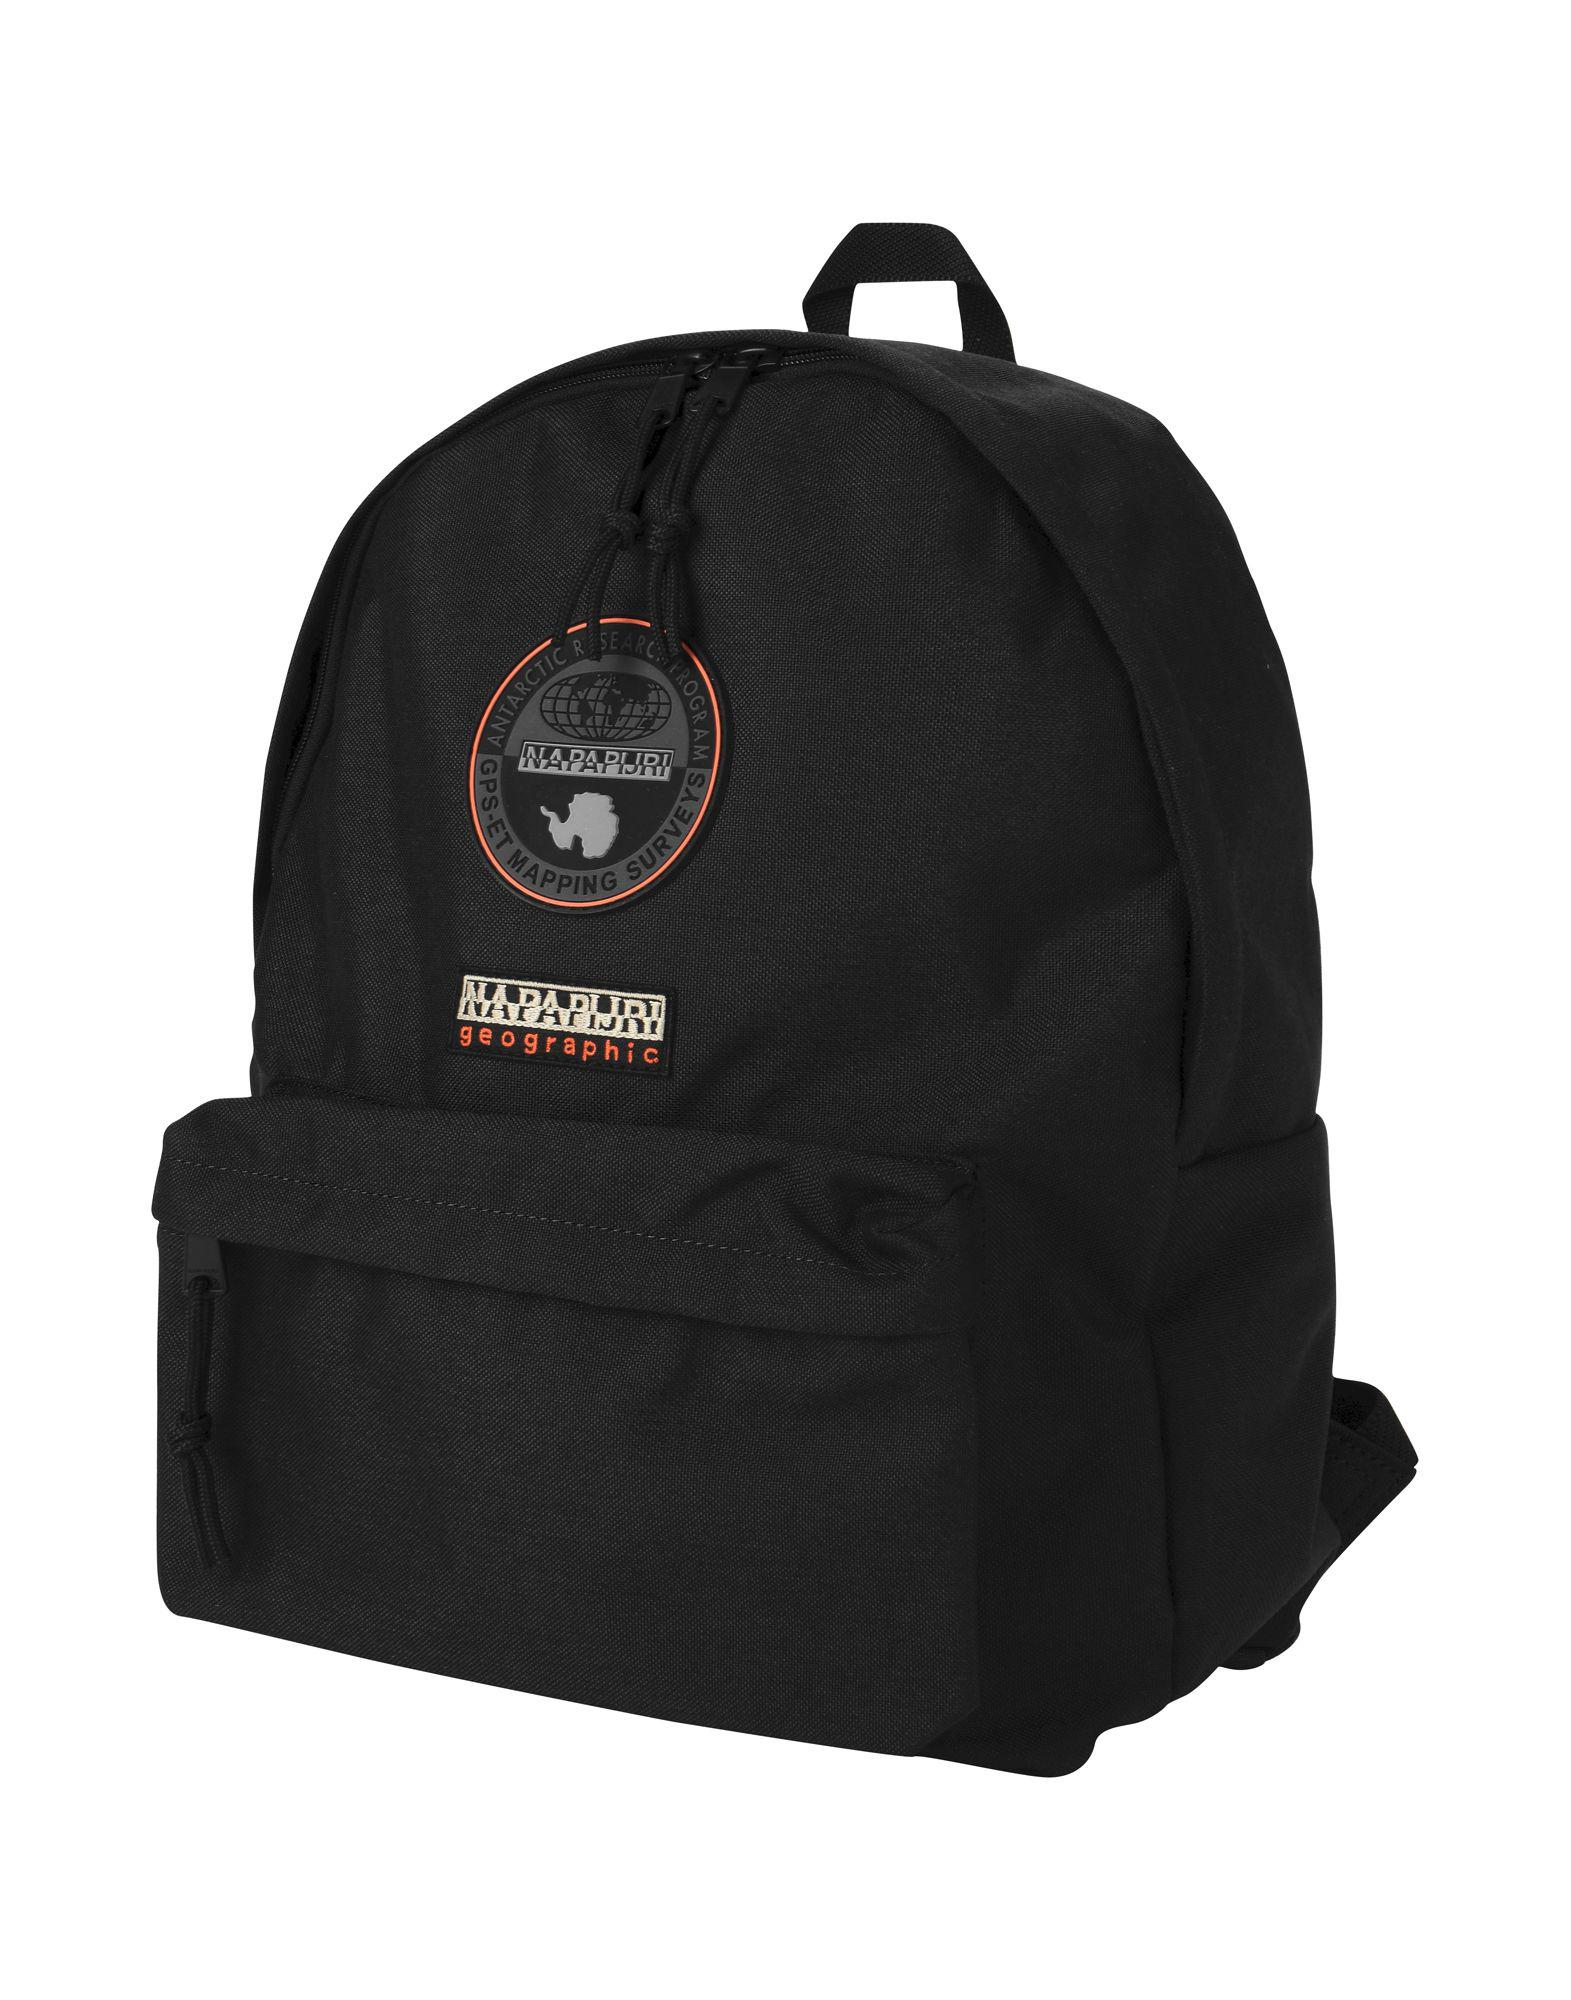 Napapijri - Black Backpacks   Bum Bags - Lyst. View fullscreen